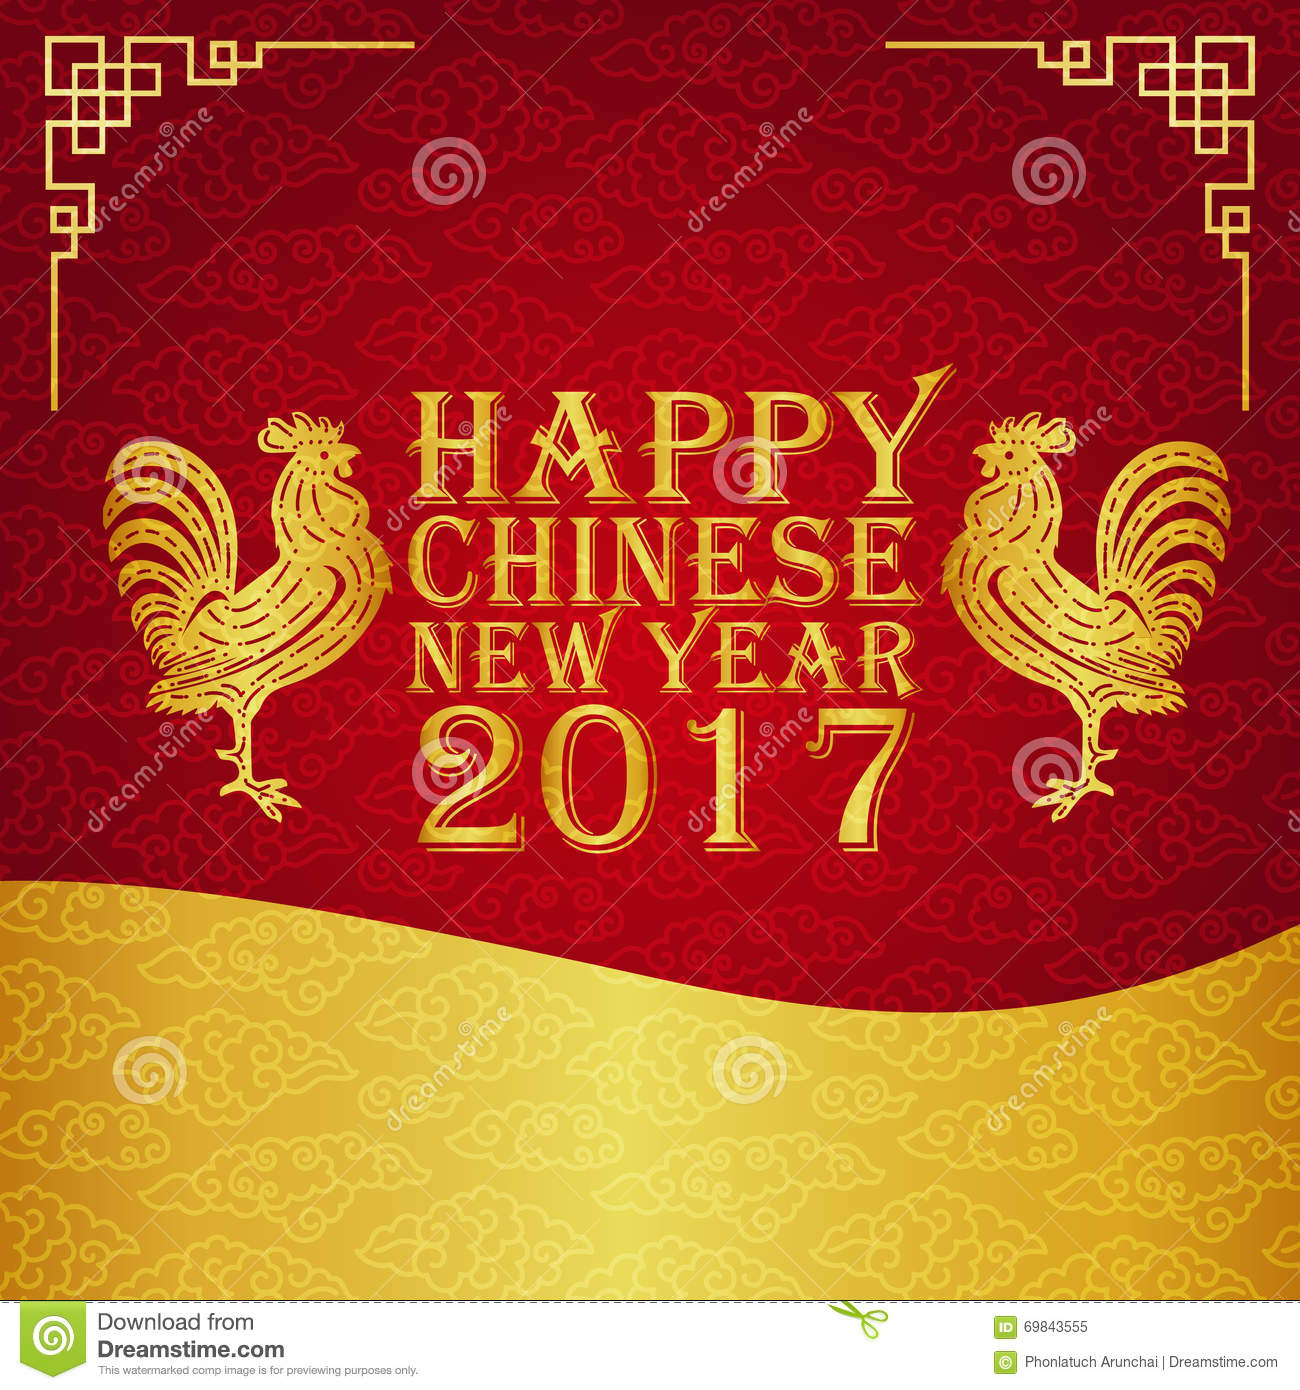 Happy Chinese New Year 2017 The Of Chicken Royalty Free Stock Photo